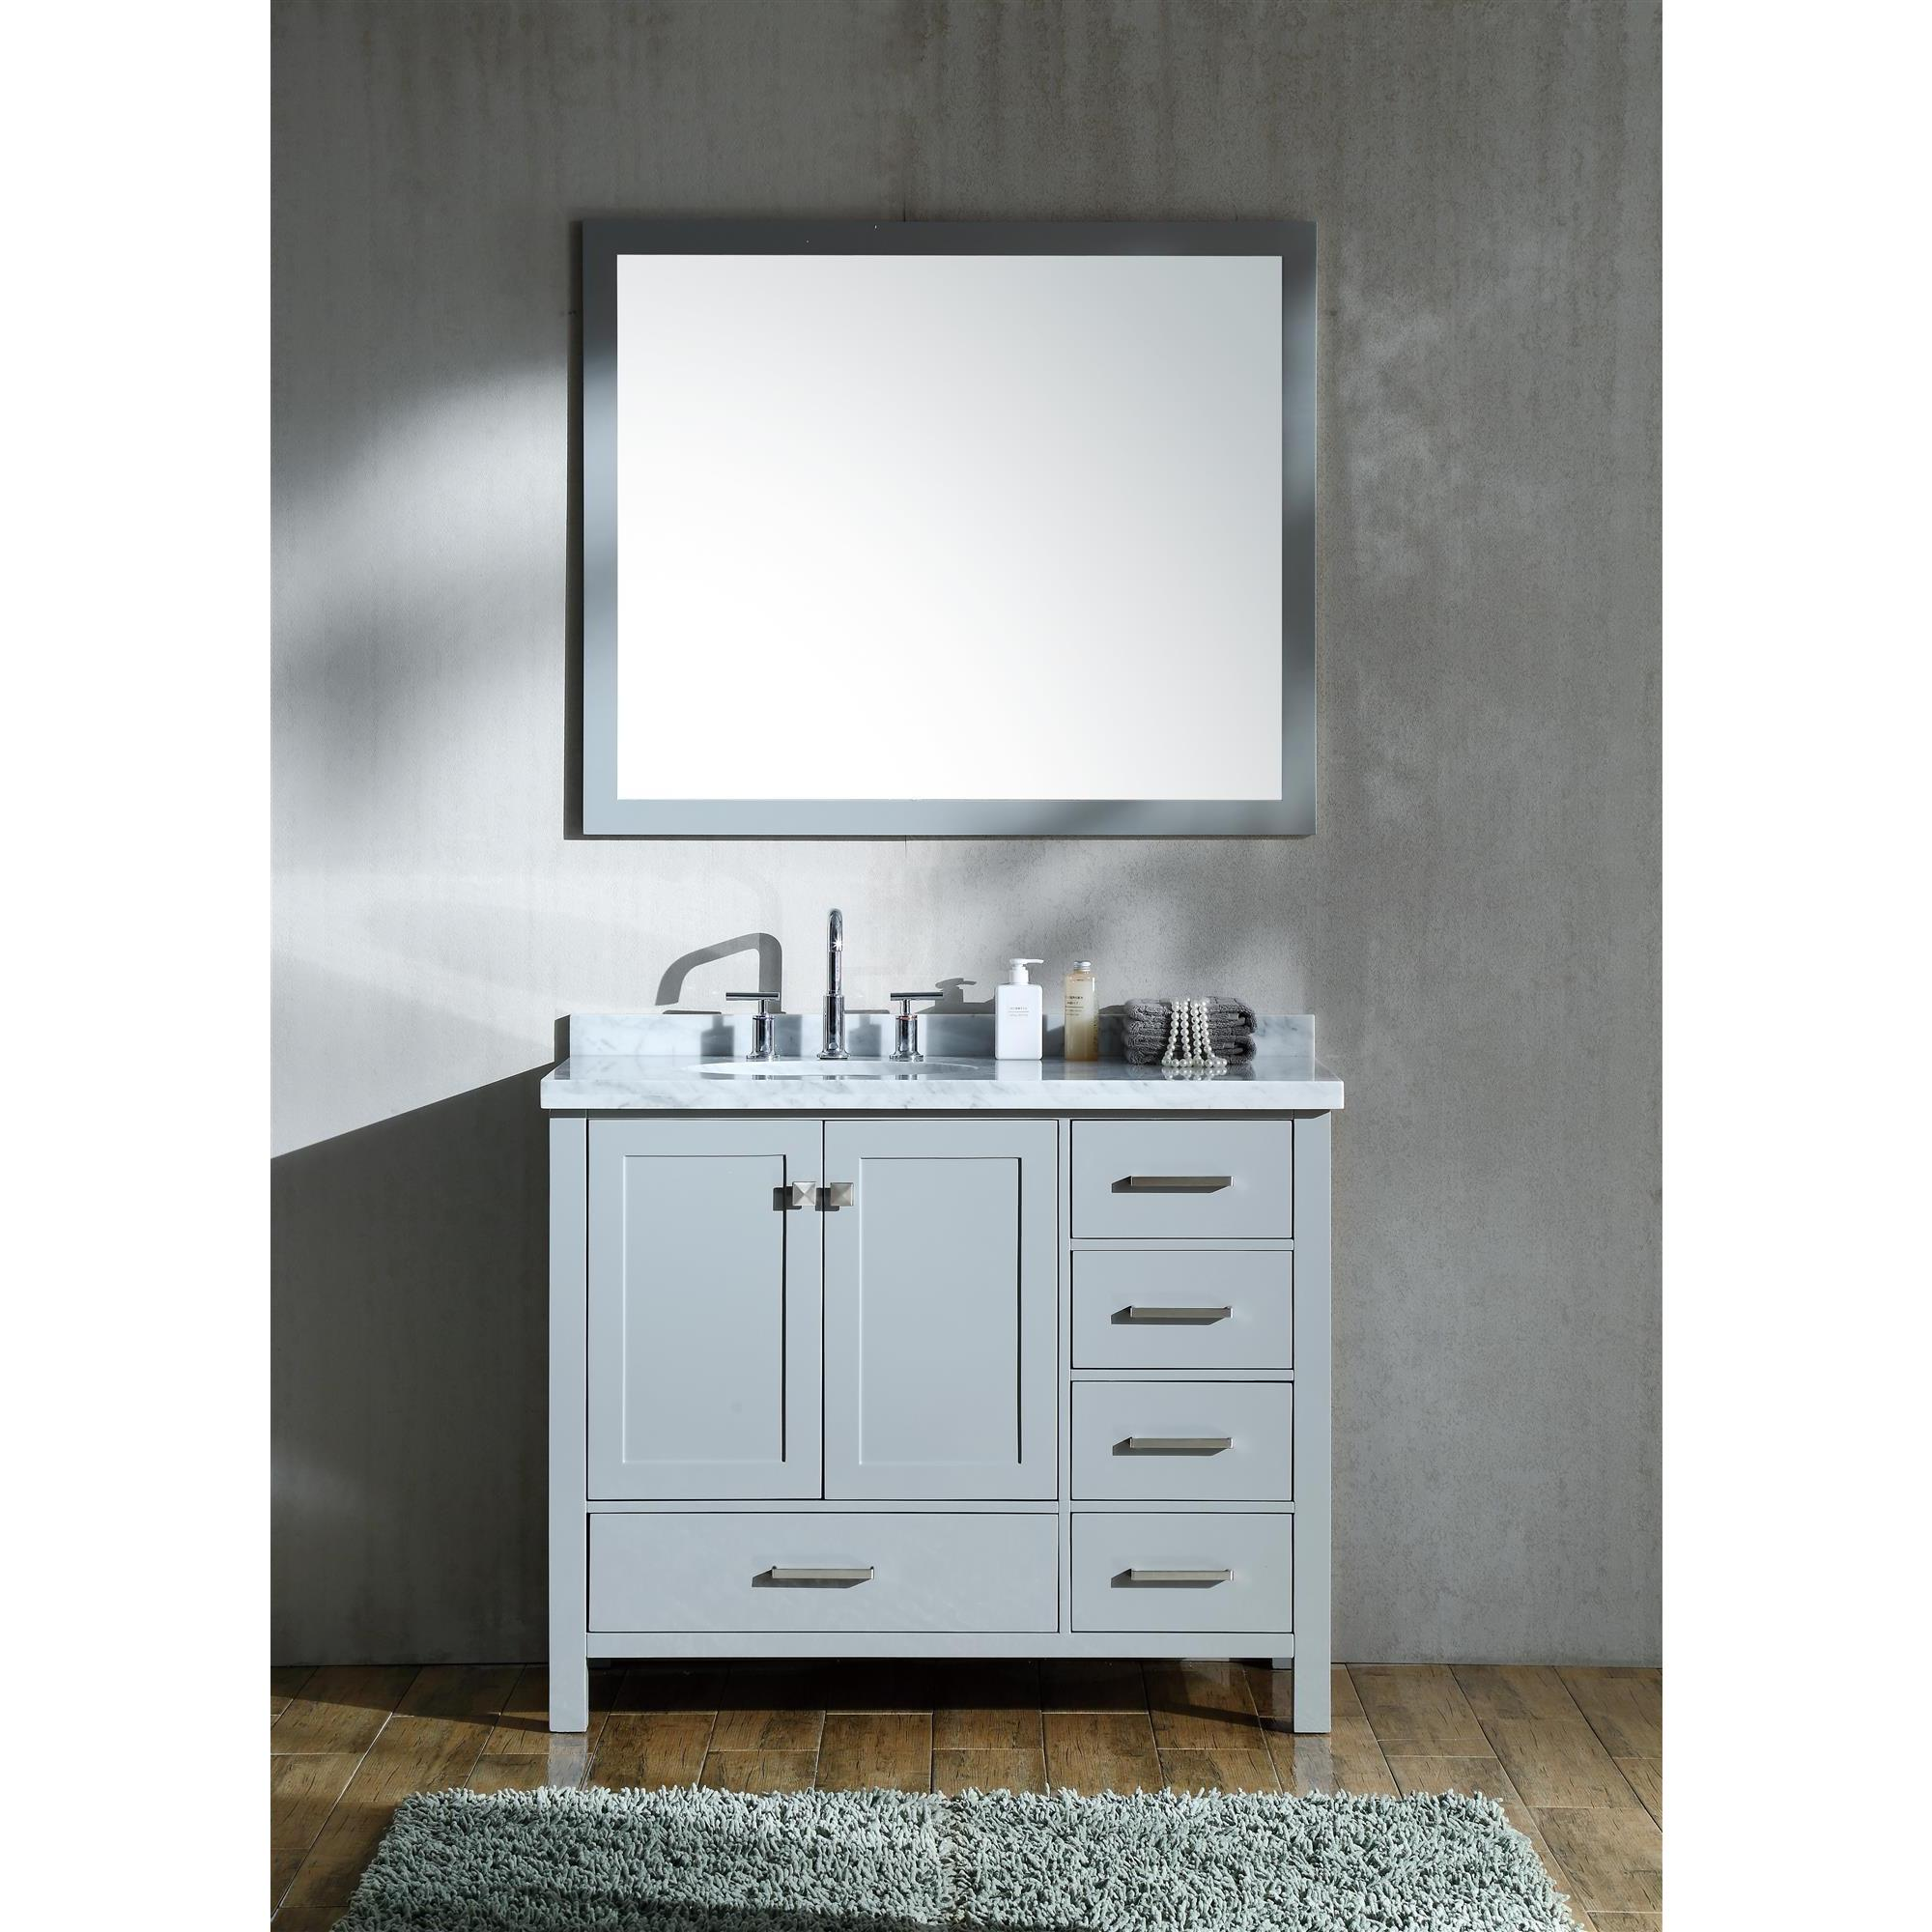 offset home single product overstock vanity left in today garden free grey ariel set inch cambridge sink shipping